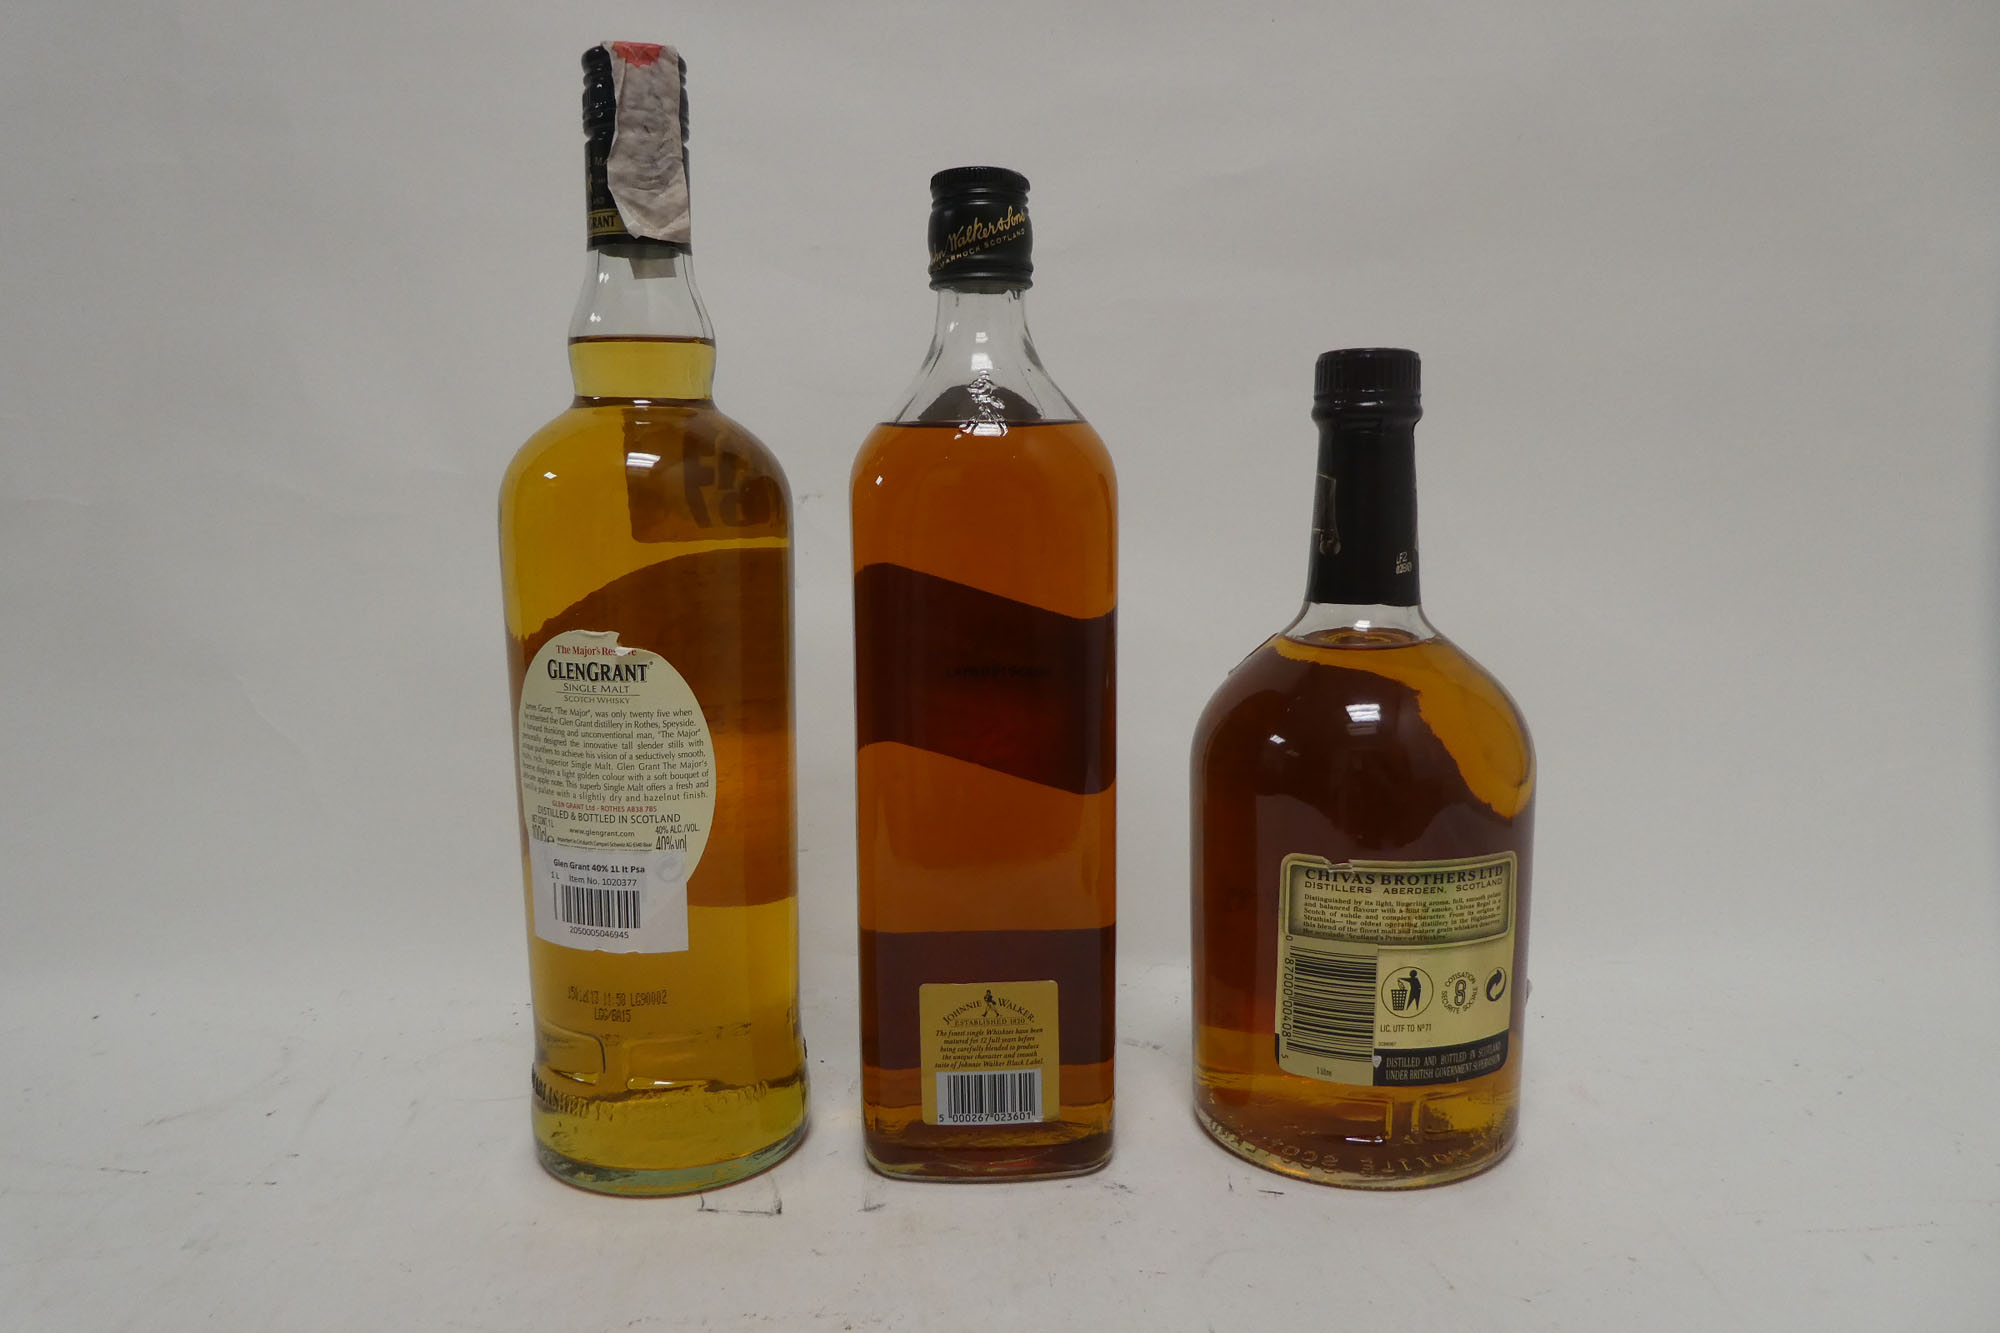 3 bottles, 1x Johnnie Walker Black Label 12 year old Scotch Whisky Duty Free label 1 Litre 43%, 1x - Image 2 of 2